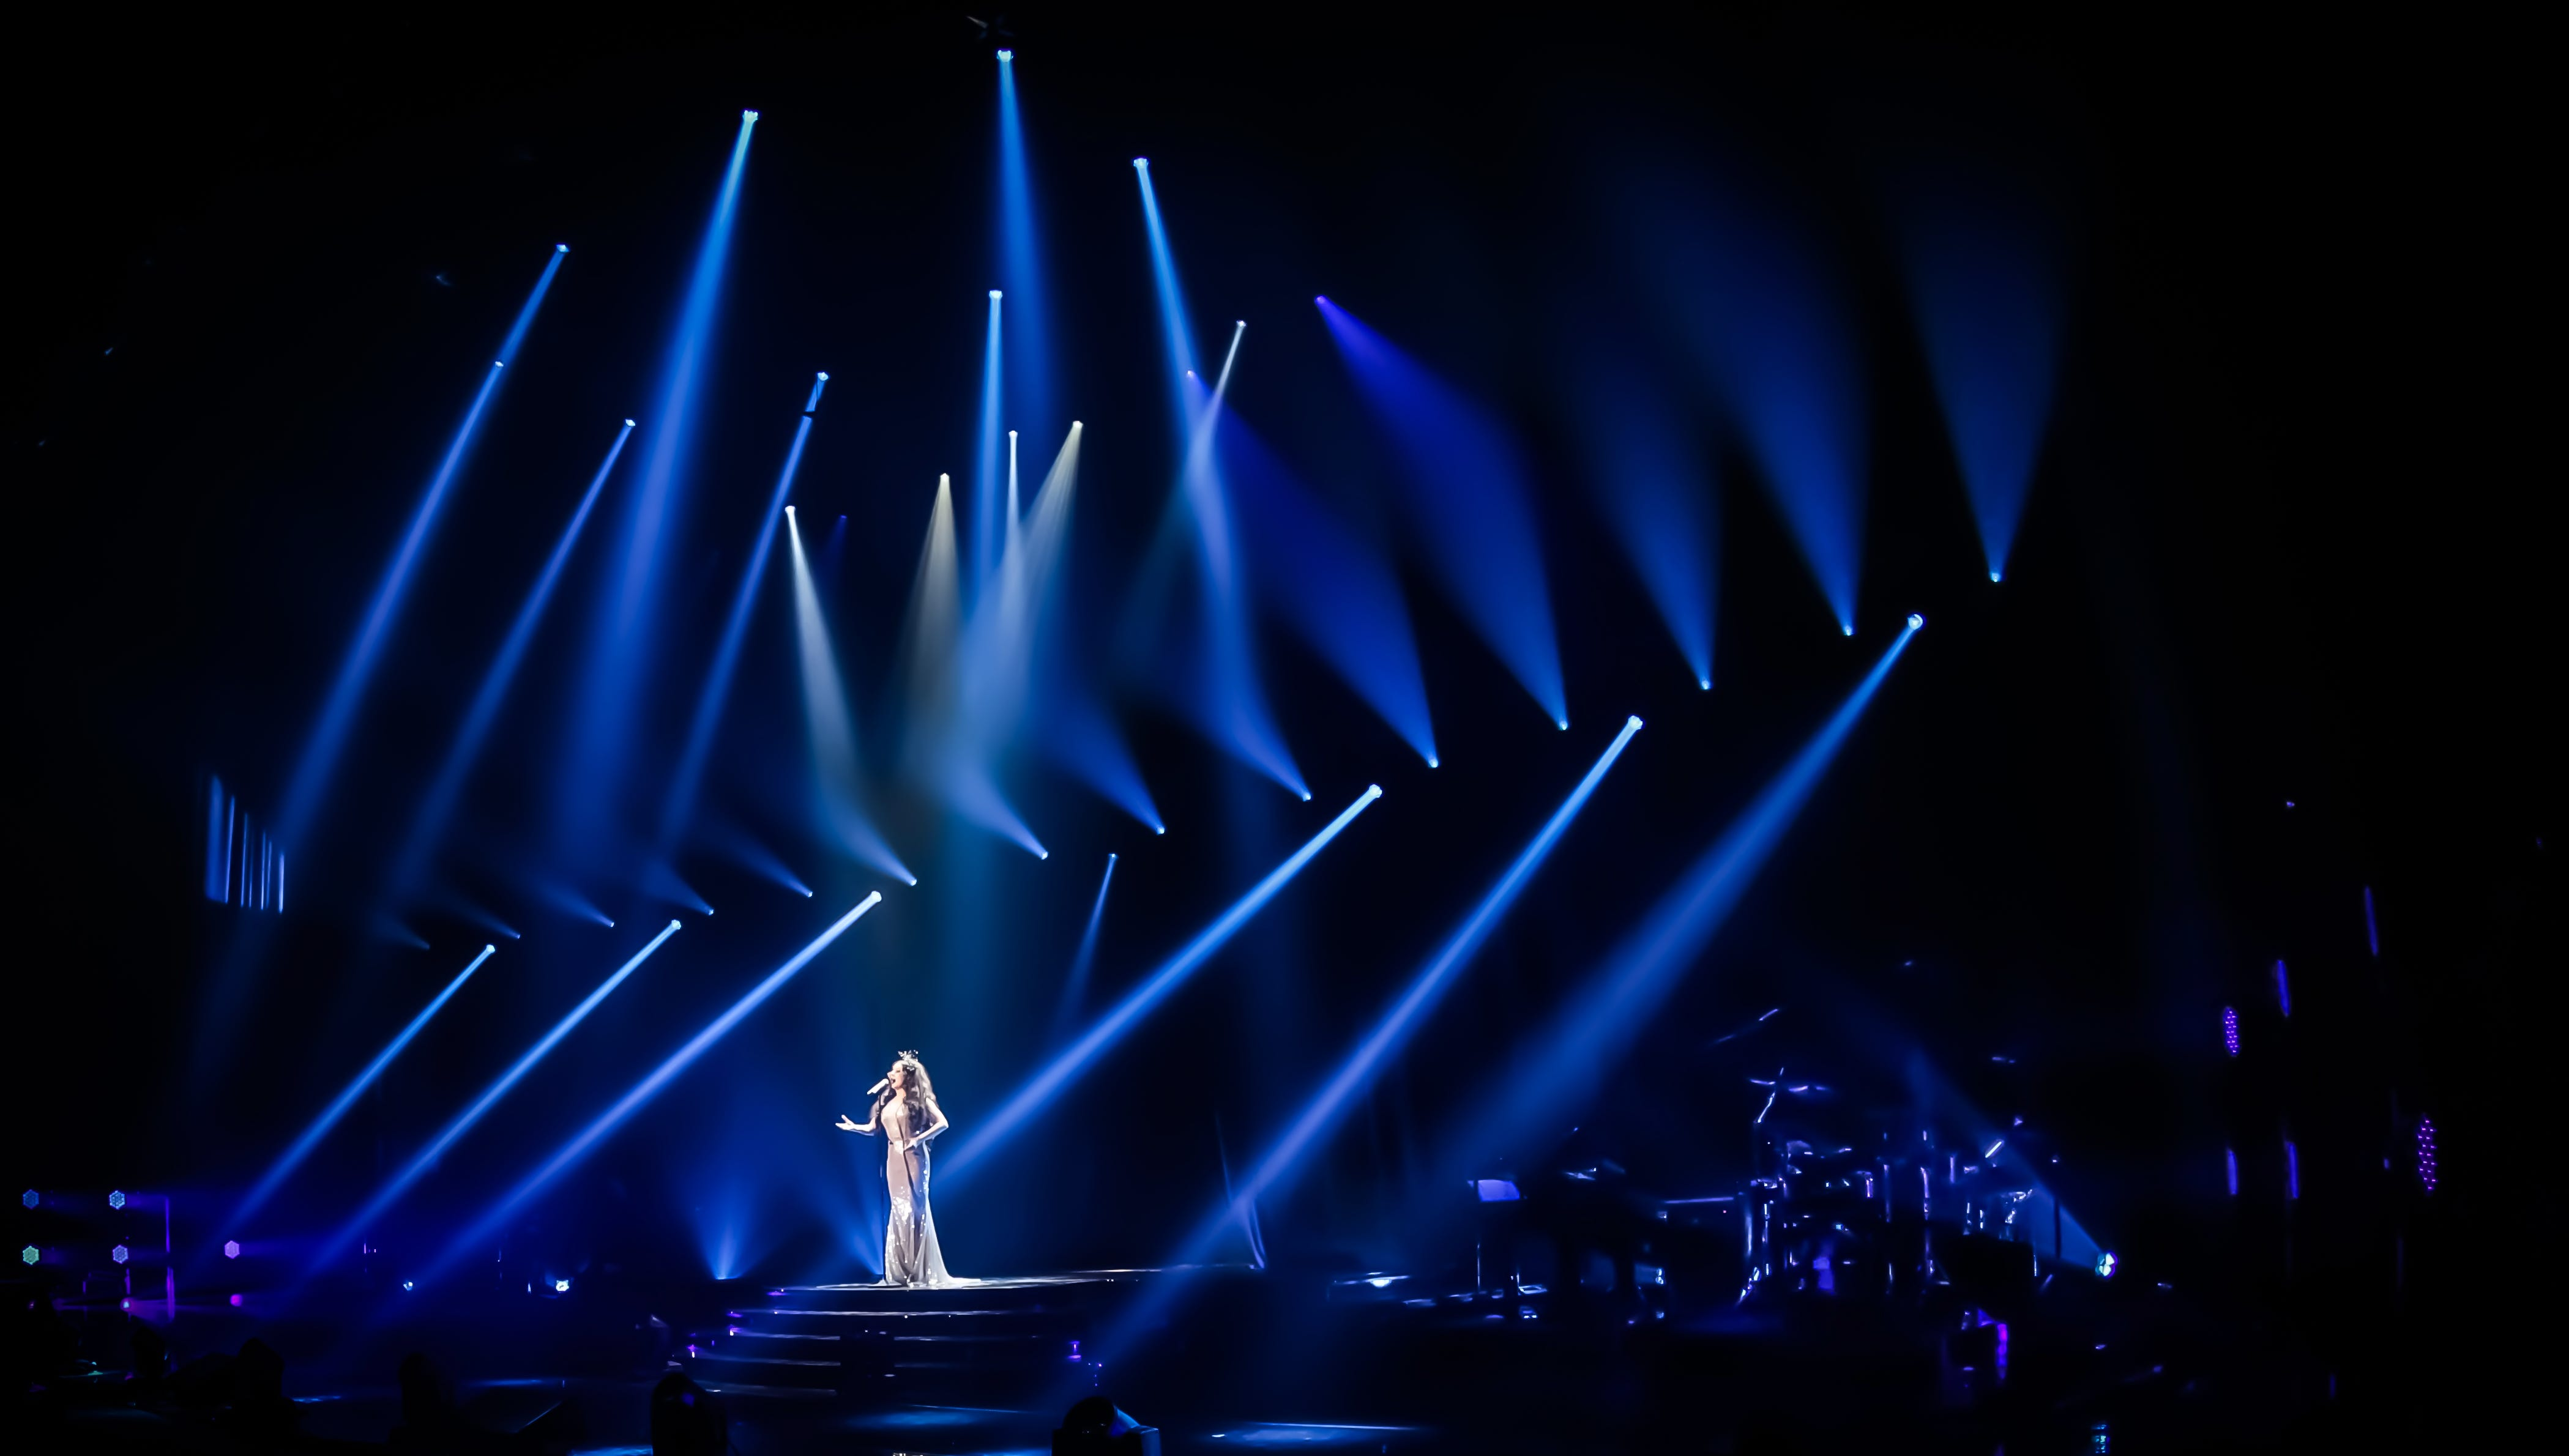 Brightman's PBS concert special is airing on various dates across the country. The soprano will then embark on a 33-date US tour.